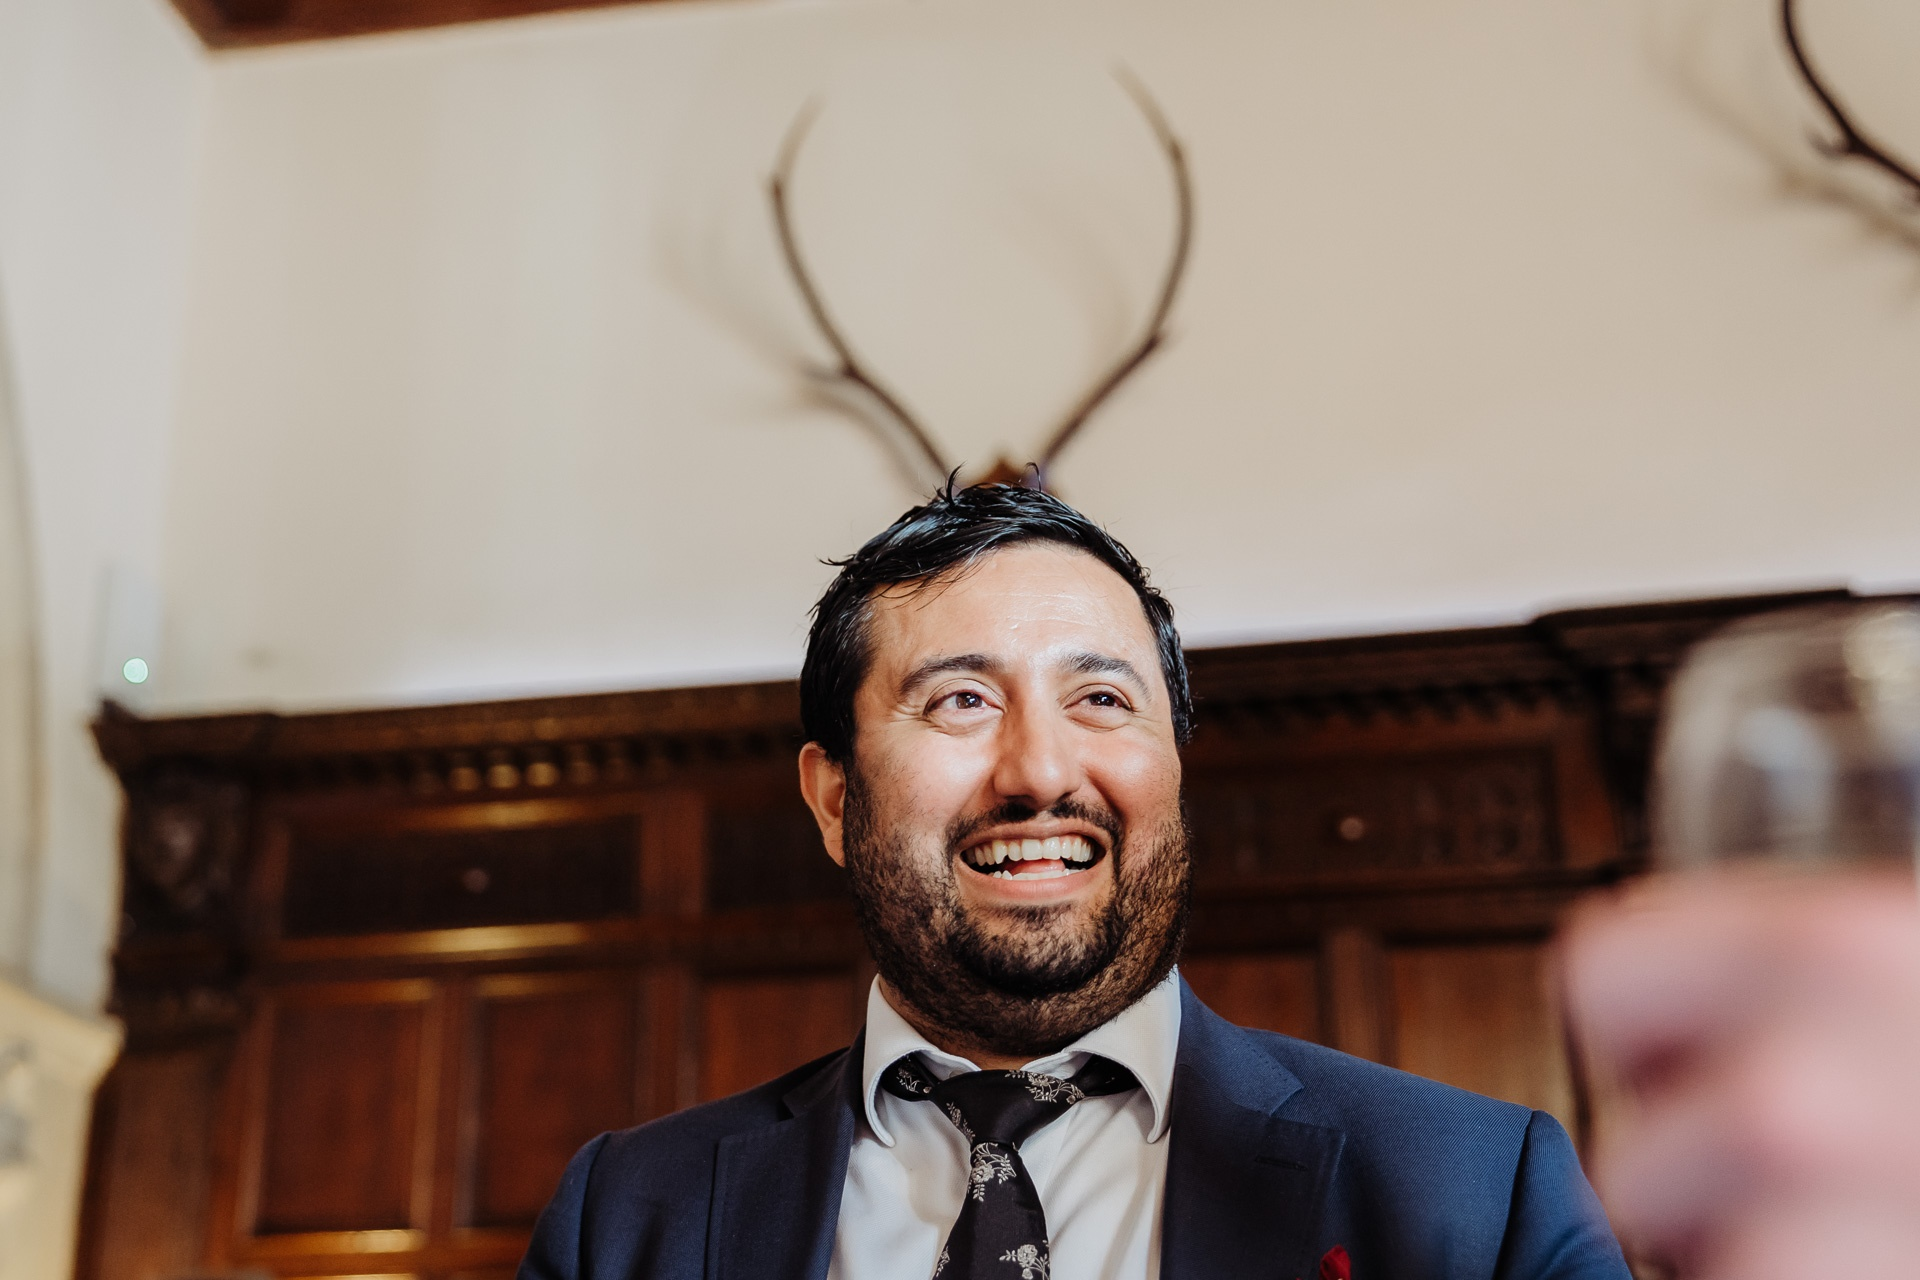 huntsham-court-wedding-photographer-001-2